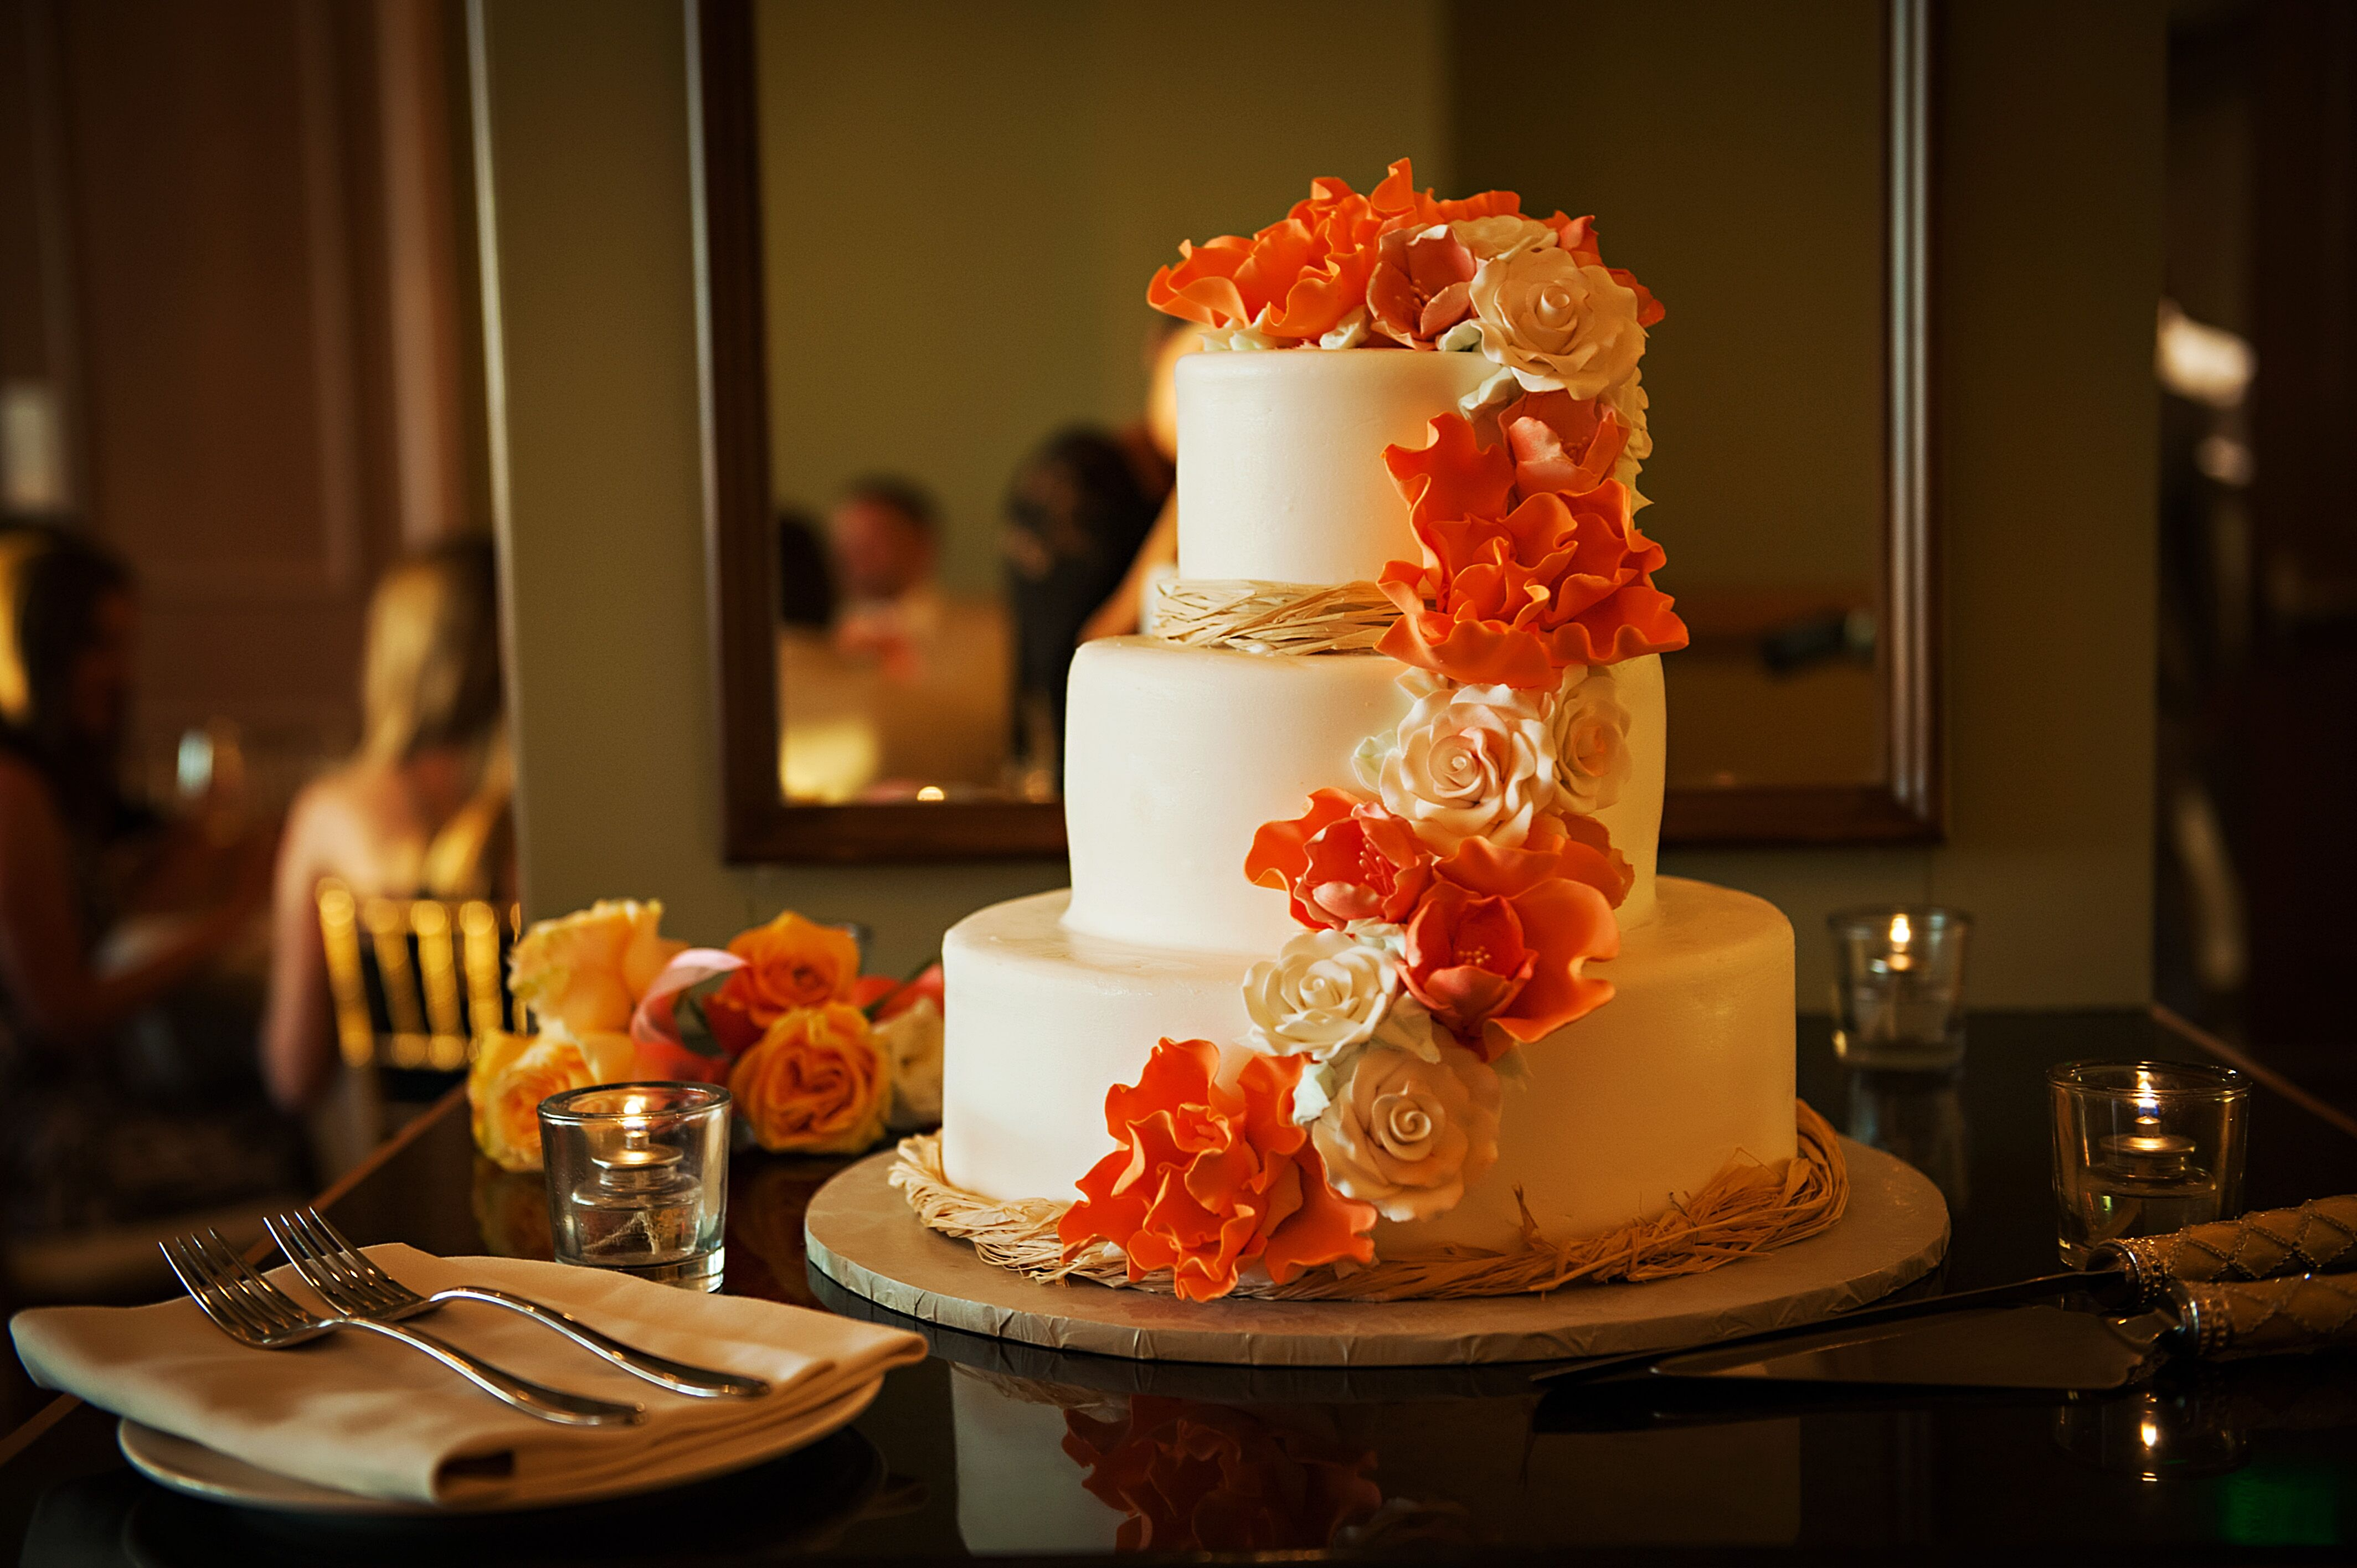 Wedding Cake With Coral And White Fondant Flowers